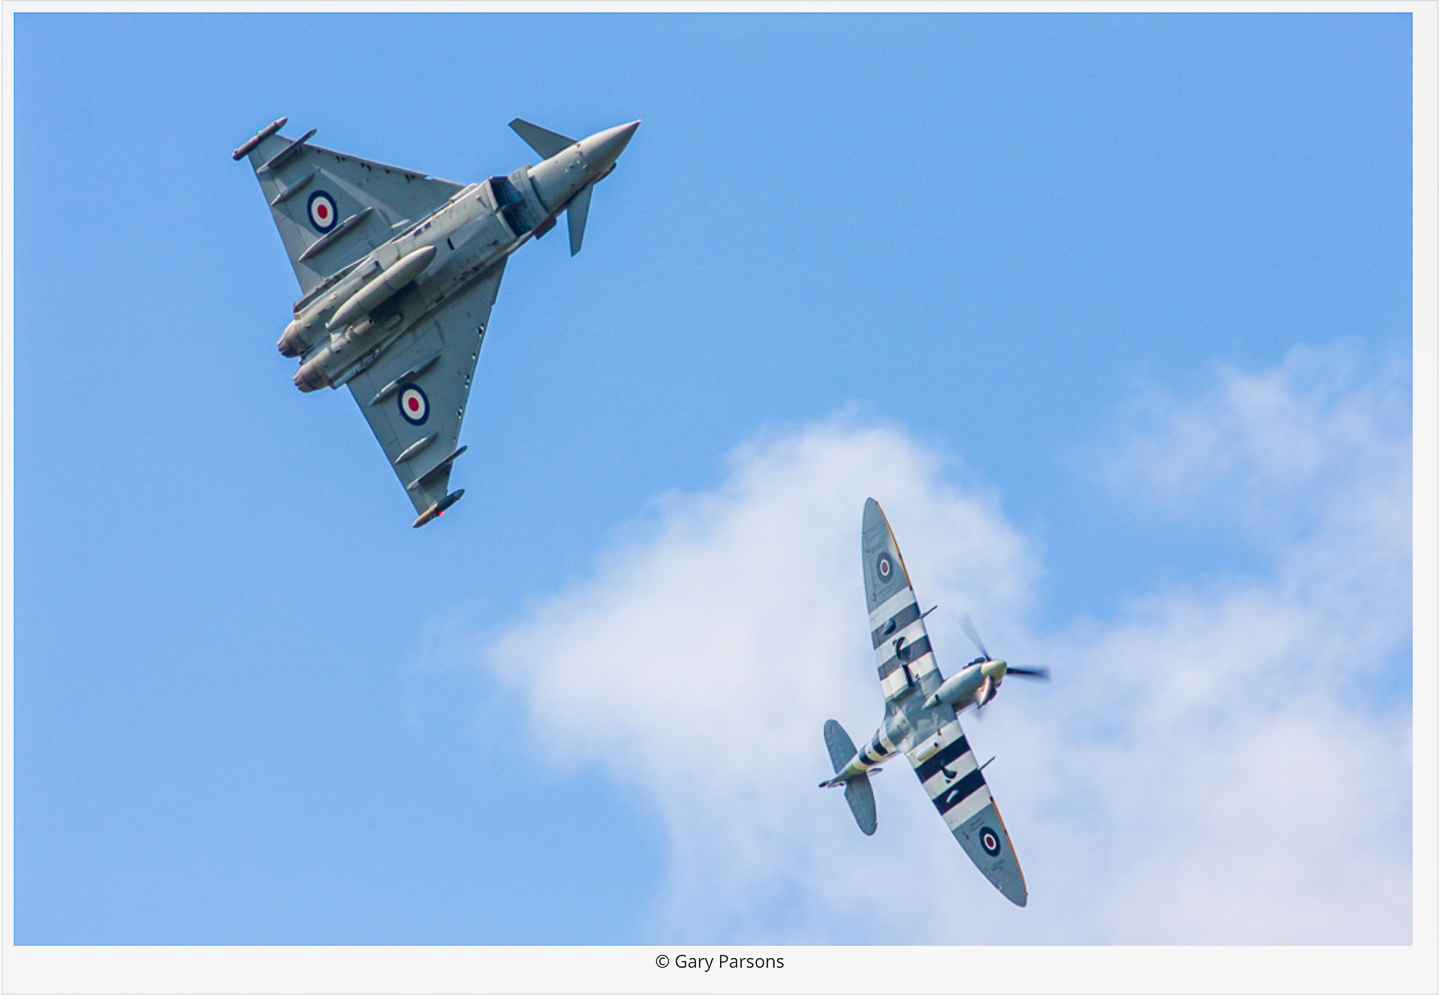 The commemorative Typhoon will fly as part of a synchro pair with a Battle of Britain Memorial Flight Supermarine Spitfire at select air shows across Britain this year. (photo by Gary Parsons via Global Aviation Resource)